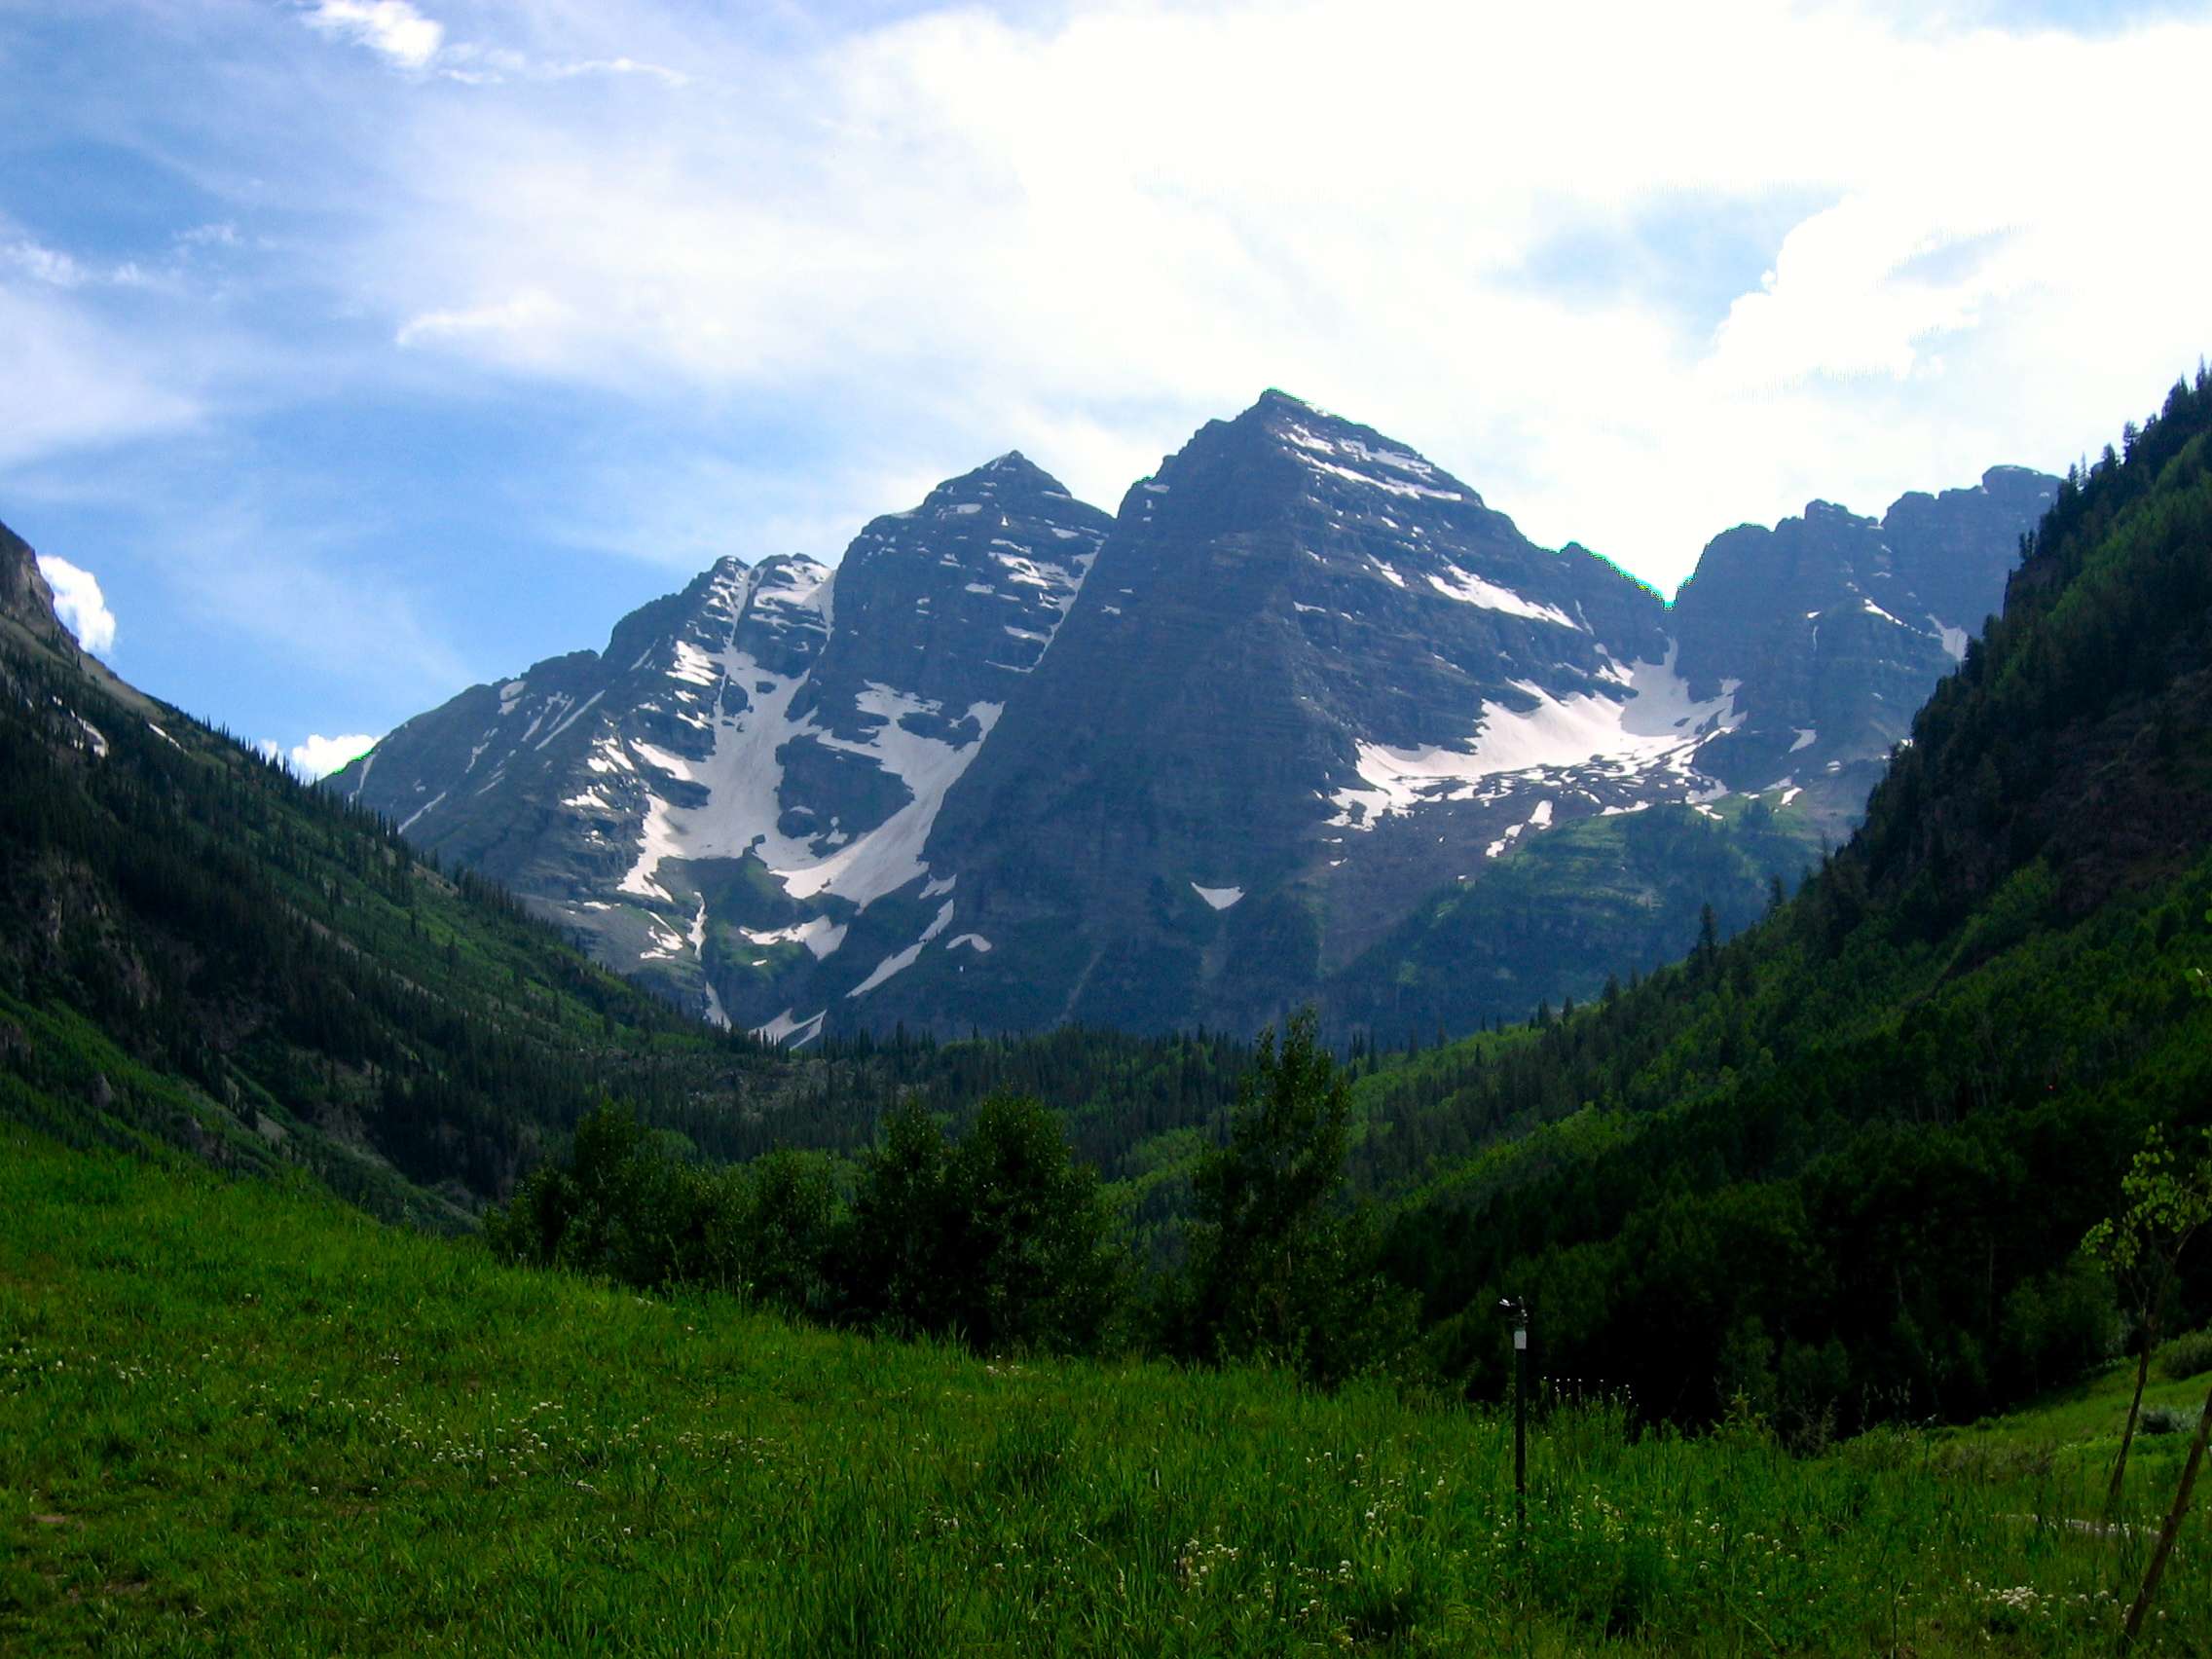 The Maroon Bells - some of the most photographed mountains in the world.